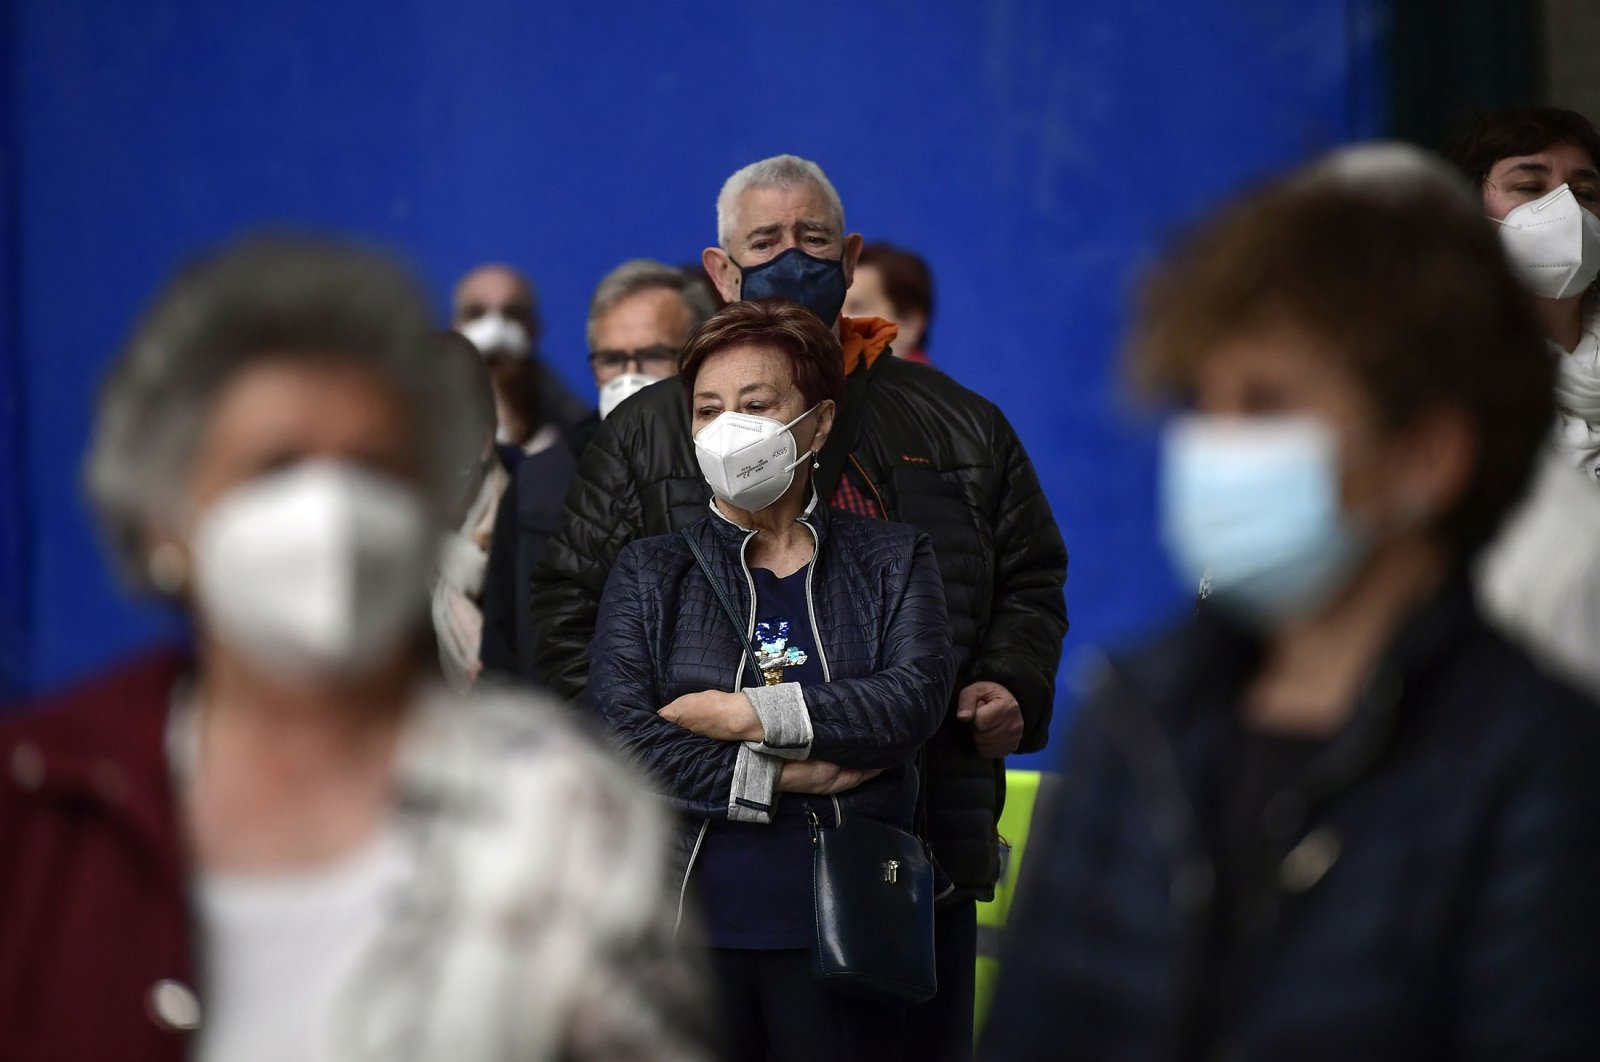 People wearing face masks wait to receive a shot of the Pfizer vaccine during a COVID-19 vaccination campaign, in Pamplona, northern Spain, May 7, 2021. (AP Photo)